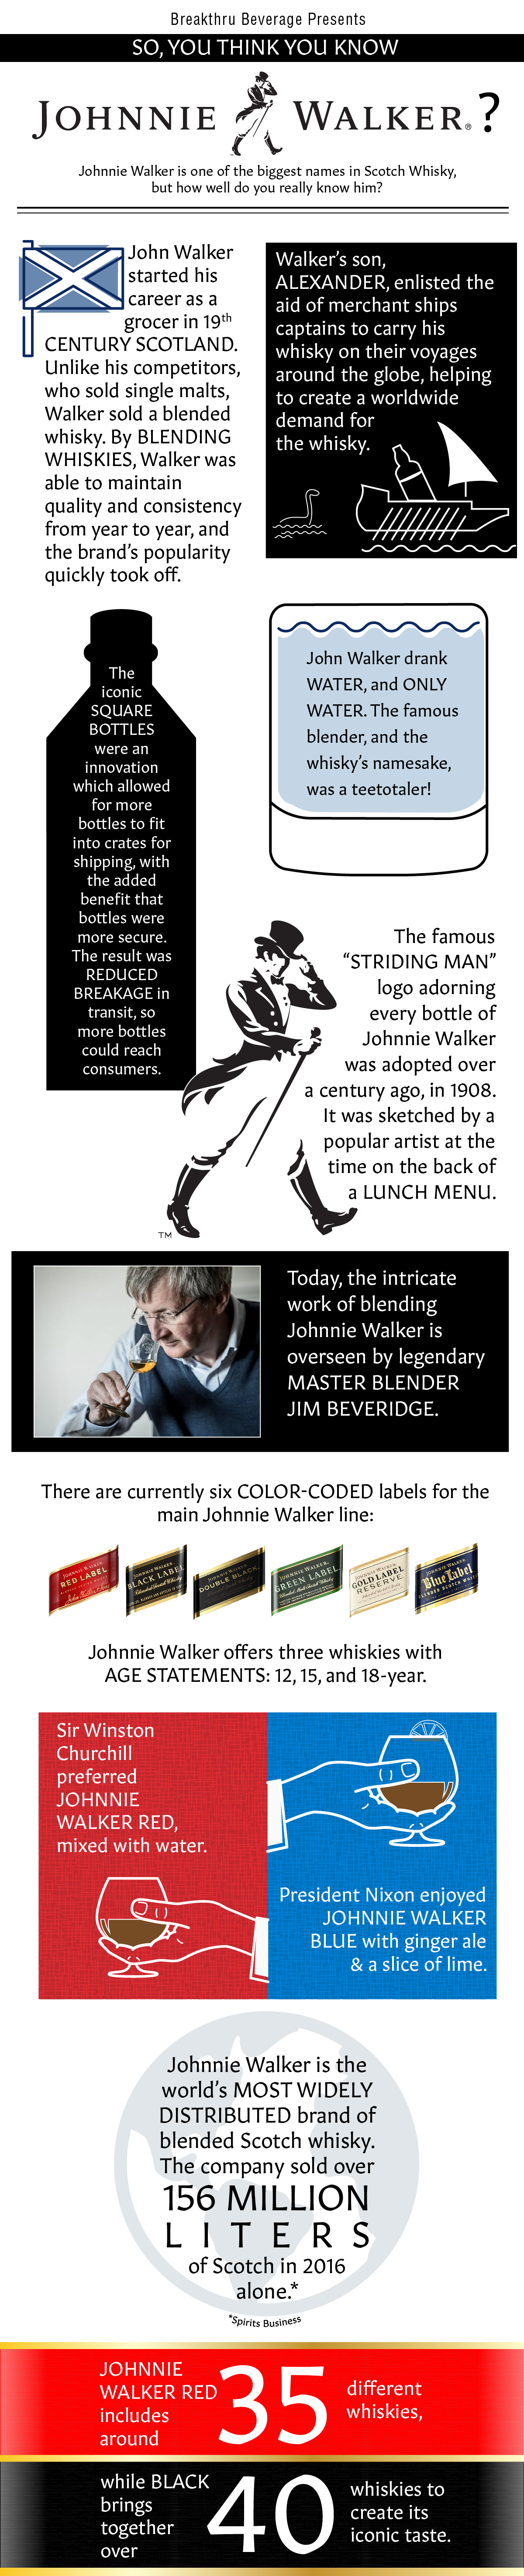 So, You Think You Know Johnnie Walker?